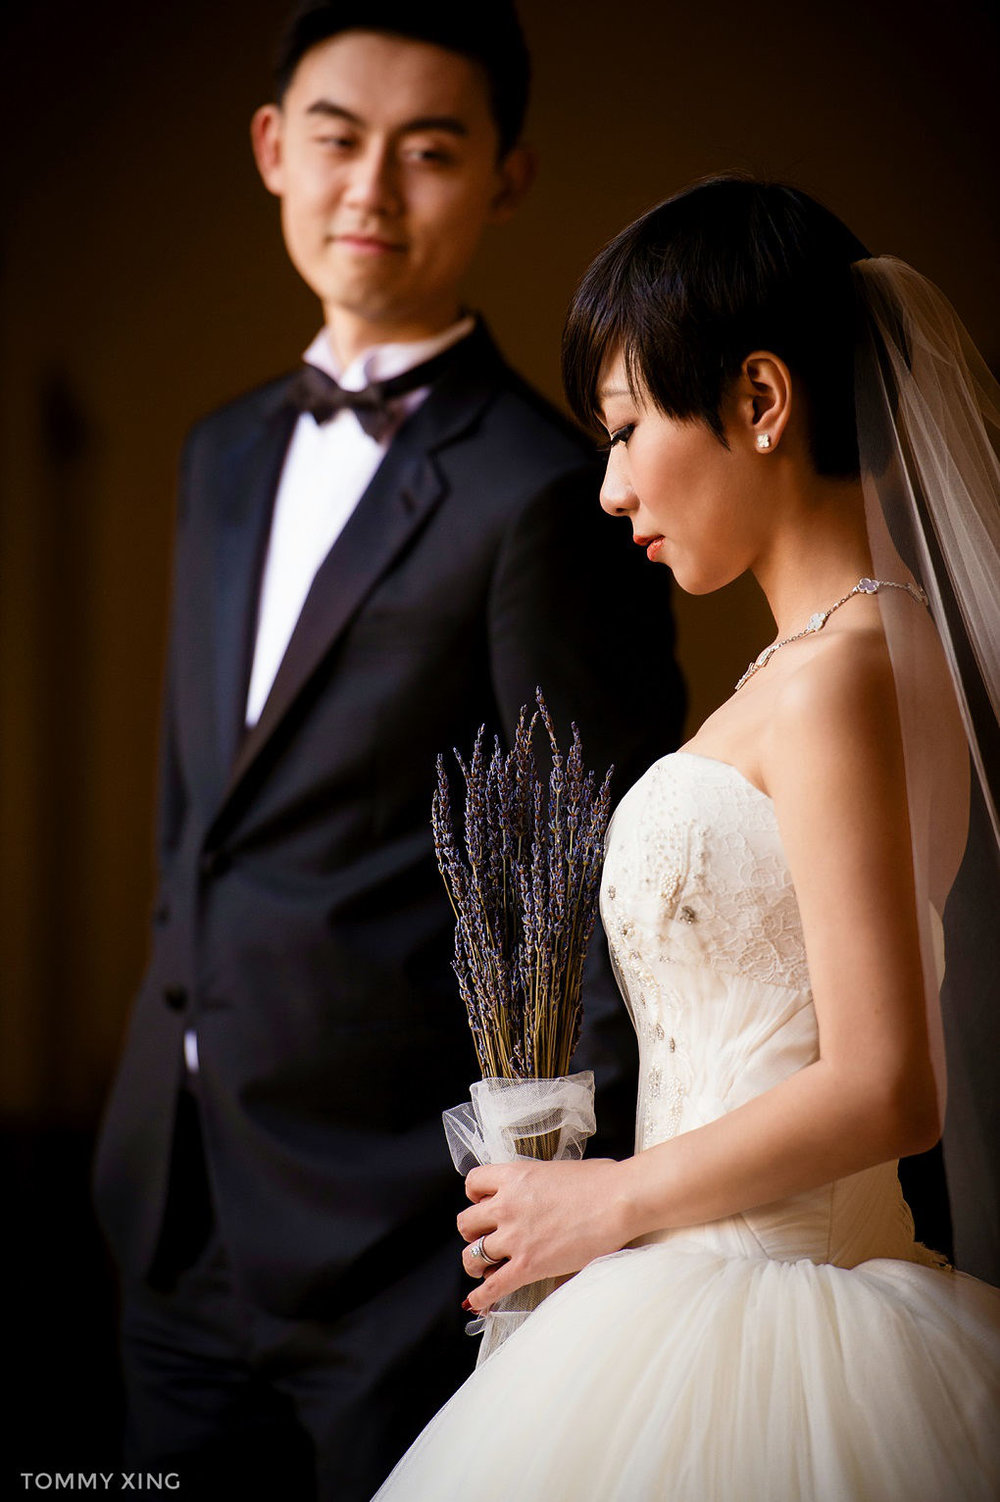 洛杉矶婚纱照 - Los Angeles Pre Wedding - Tommy Xing08.jpg